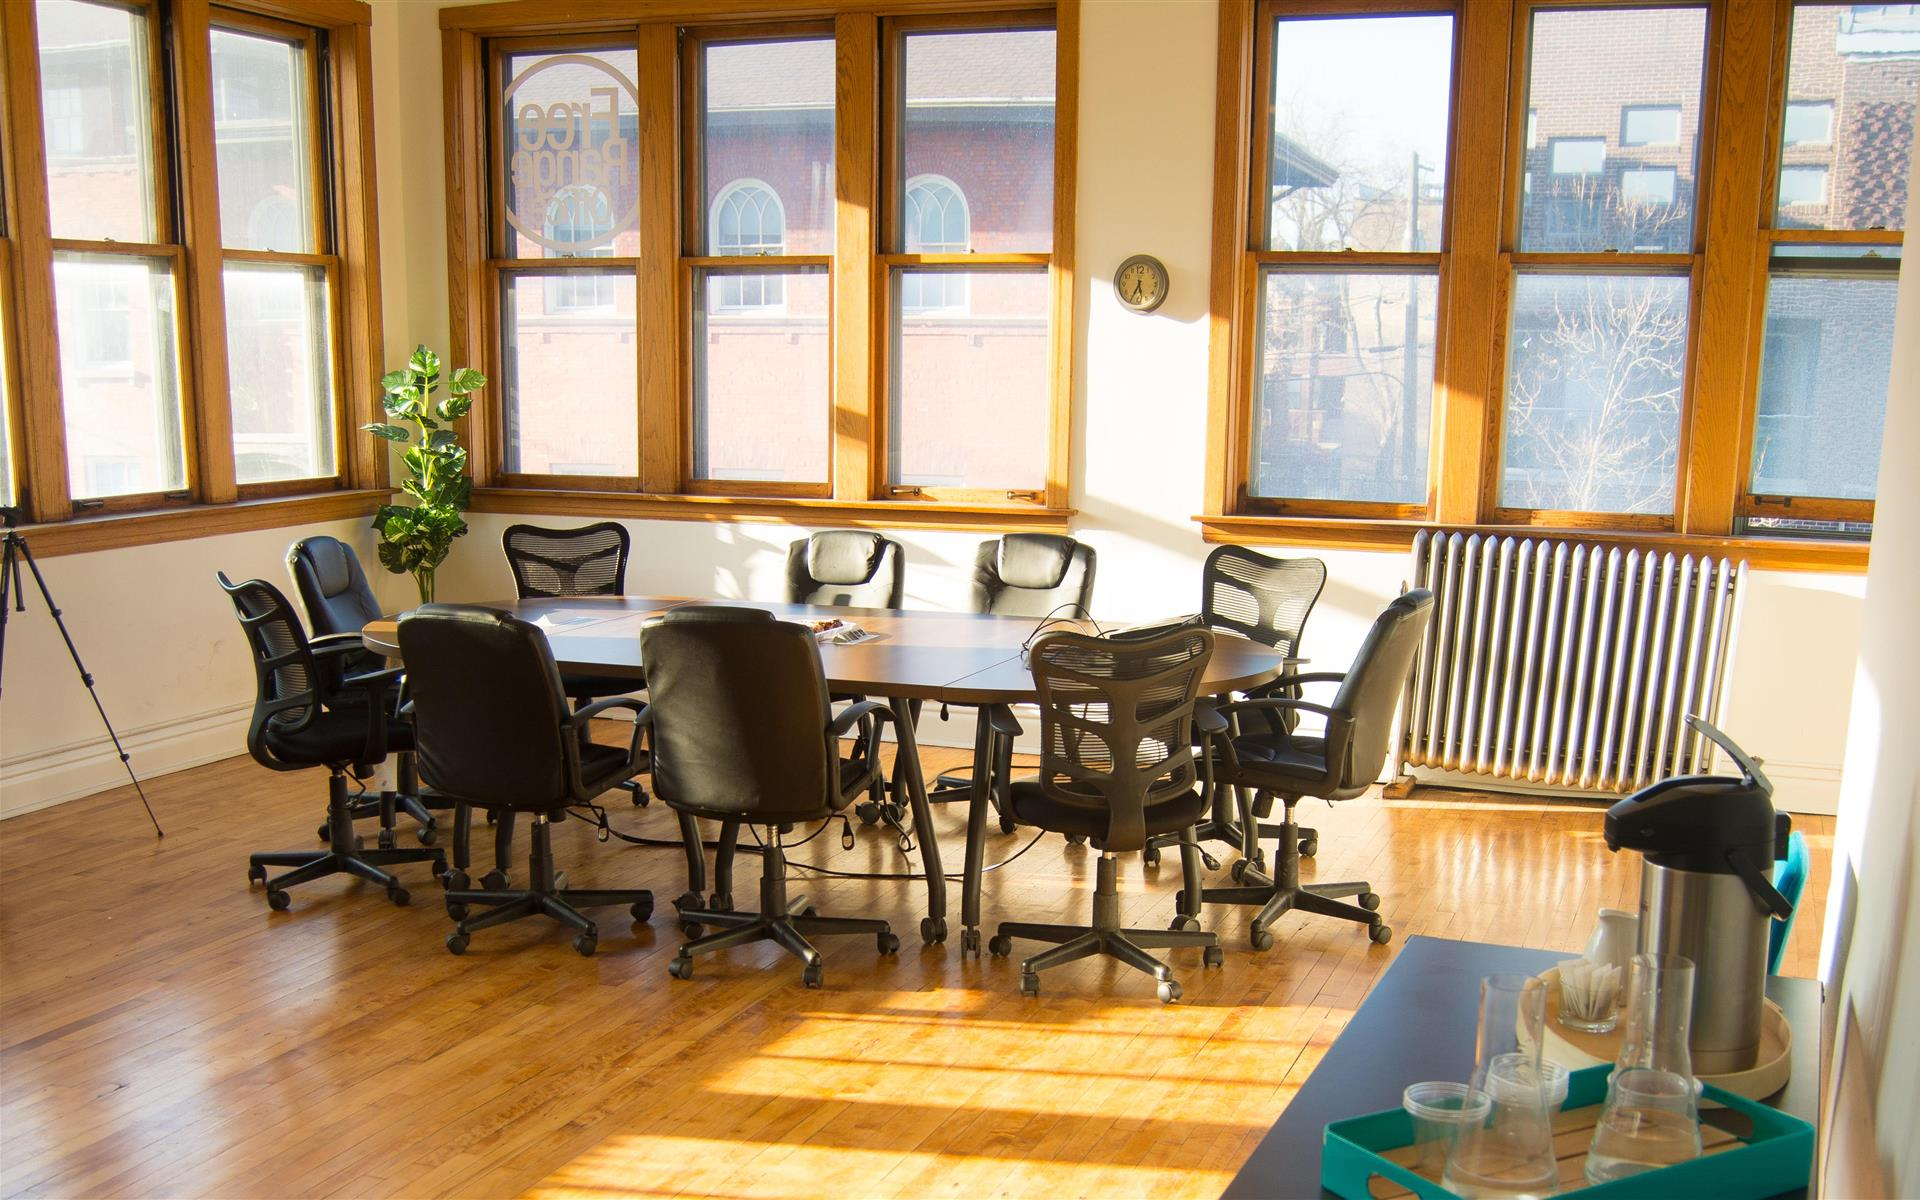 Free Range Office - Large Conference Room: 10-25 people